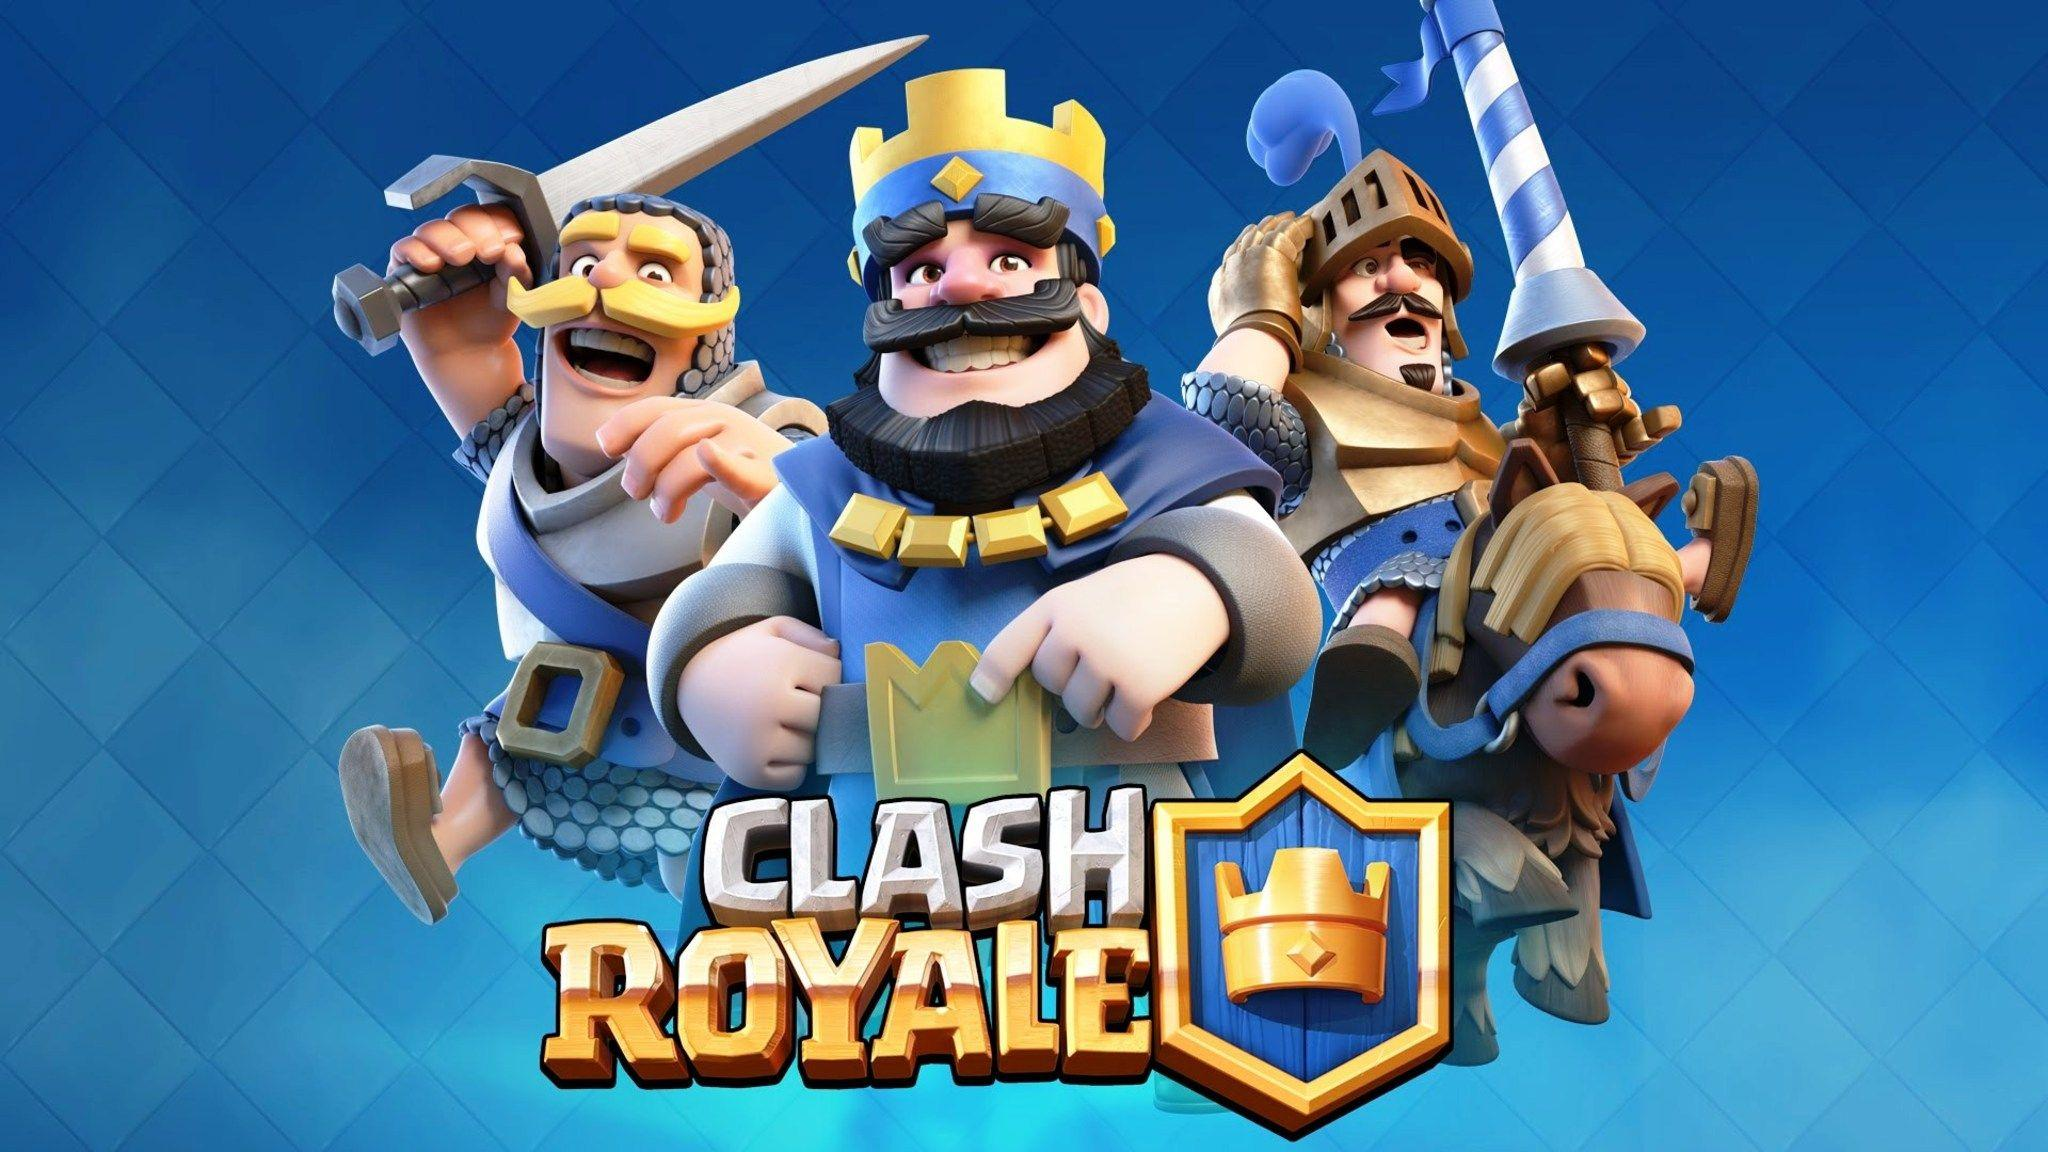 Download Clash Royale Supercell Game HD Wallpaper In 2048x1152 ...